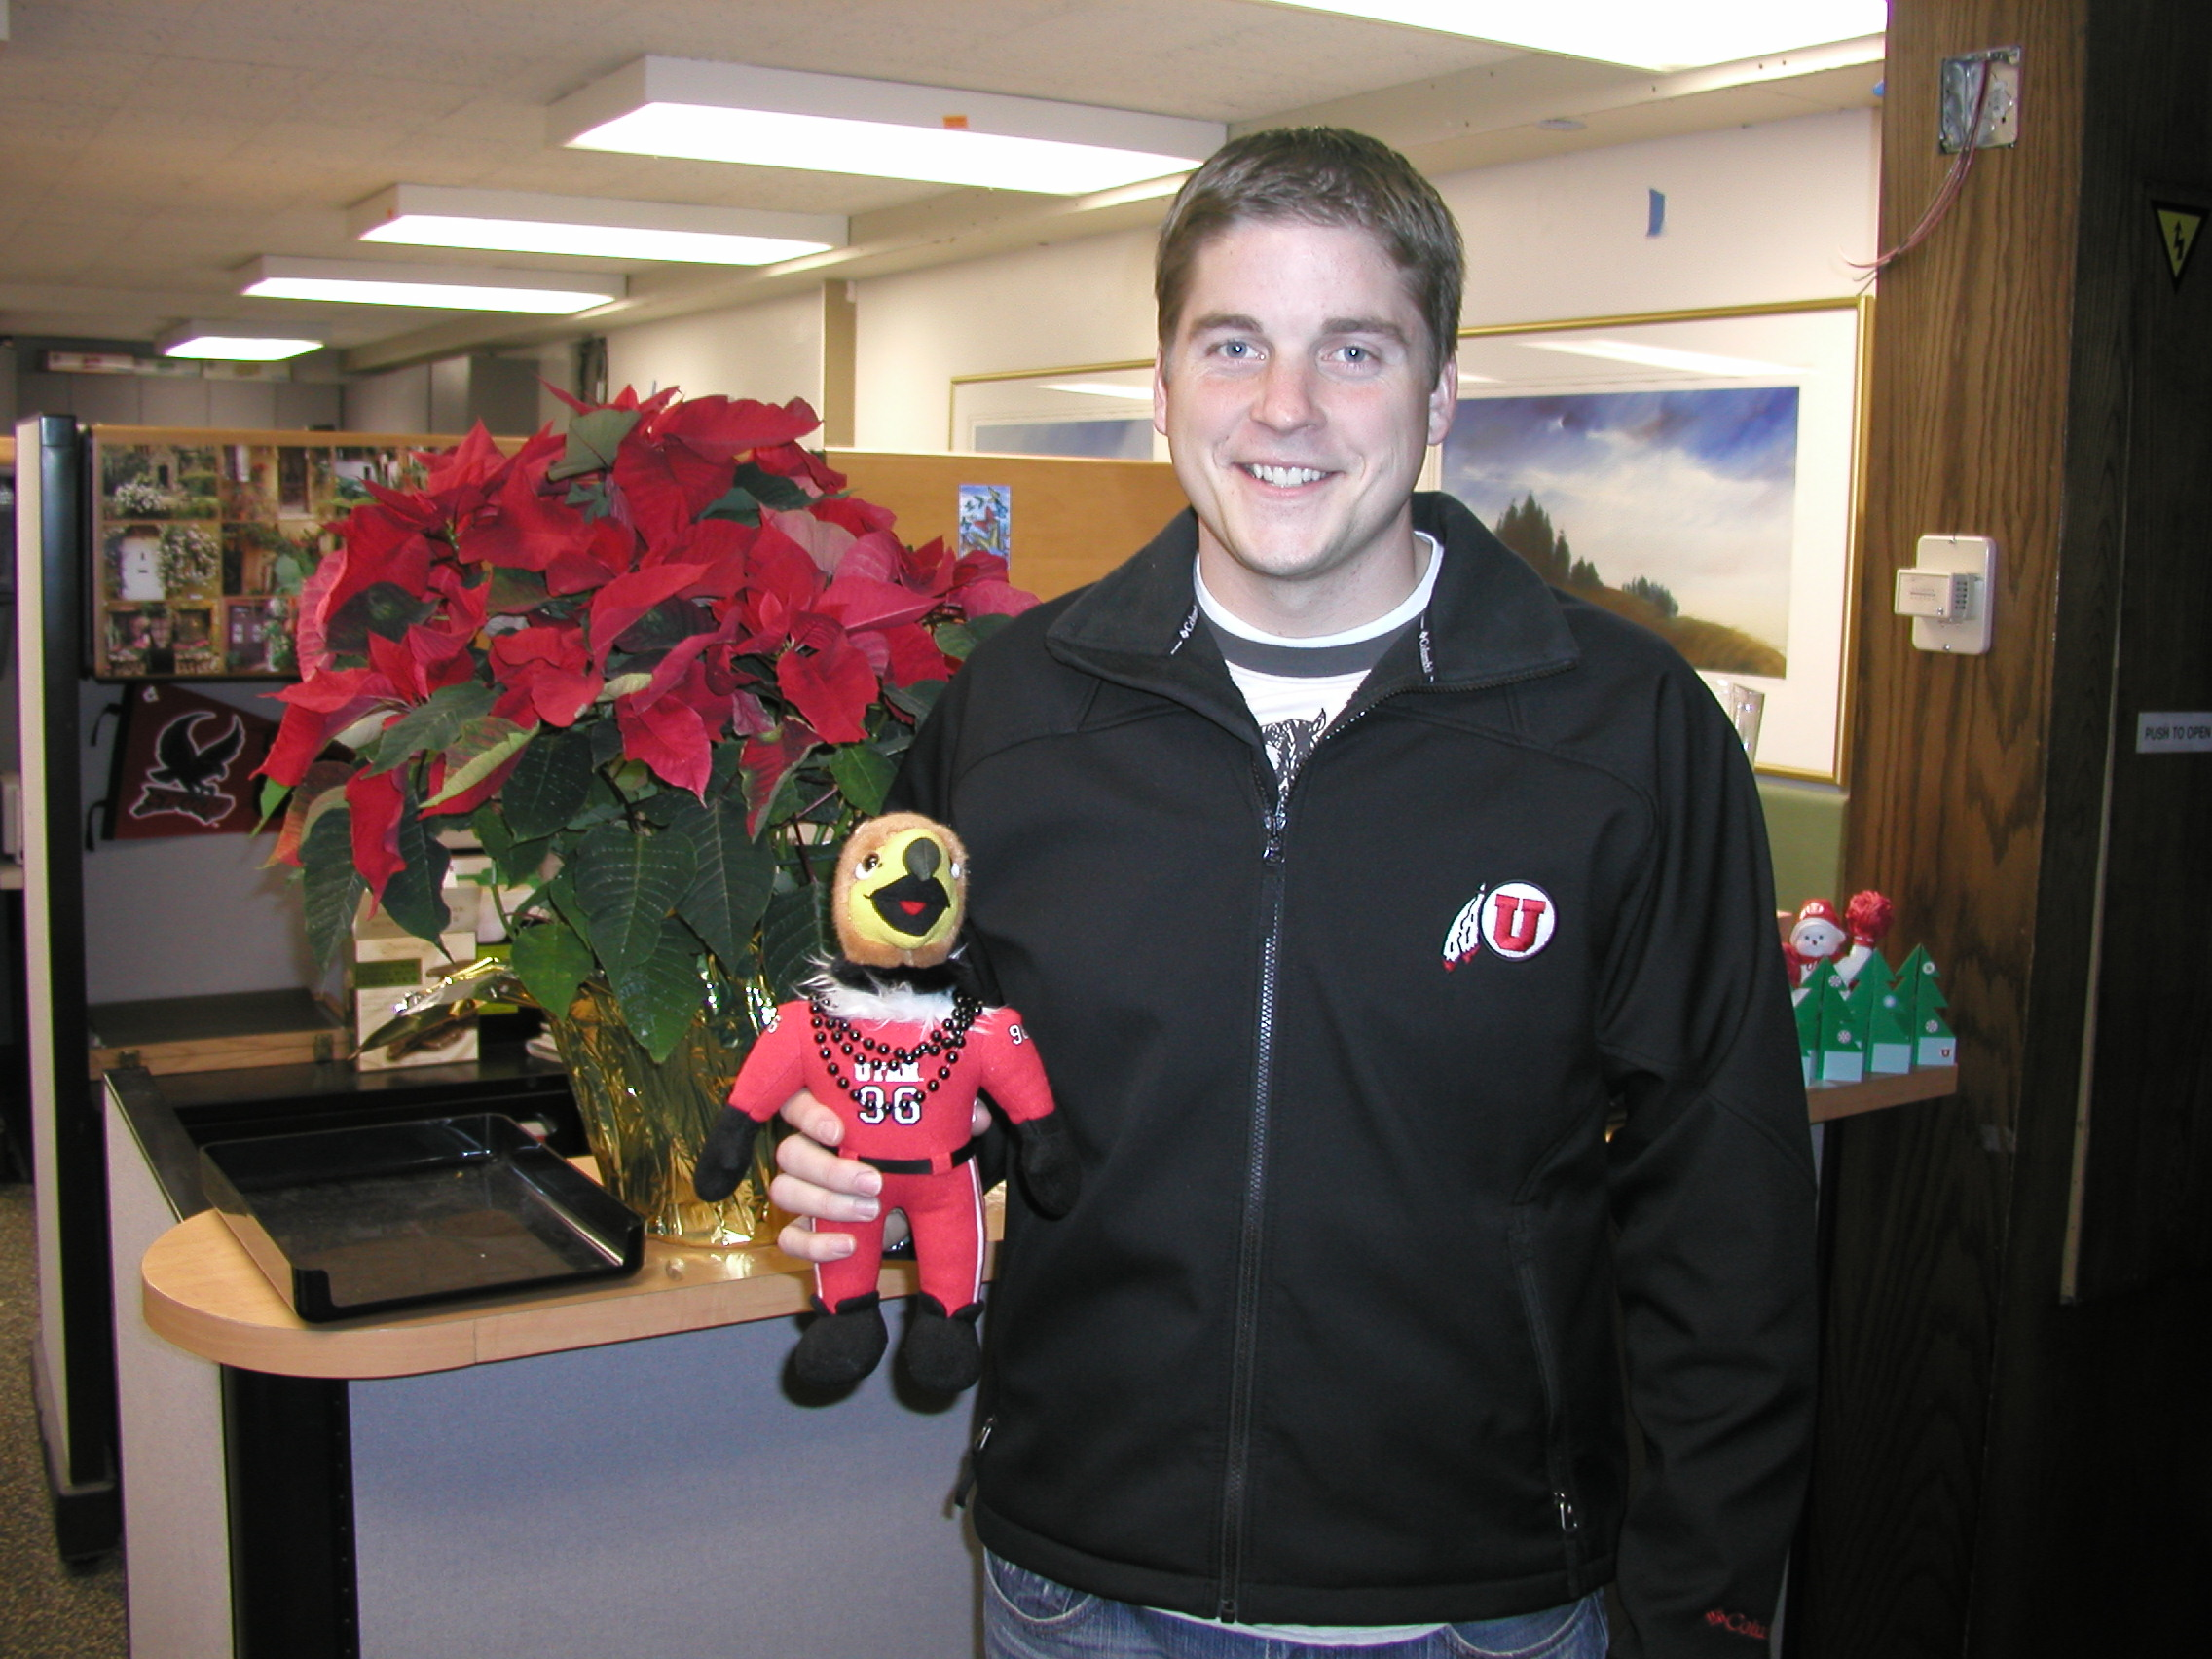 U MUSS Officer Jonathan Bowen and his sidekick Lil' Swoop will blog about their trip to see the Utes in the Sugar Bowl.